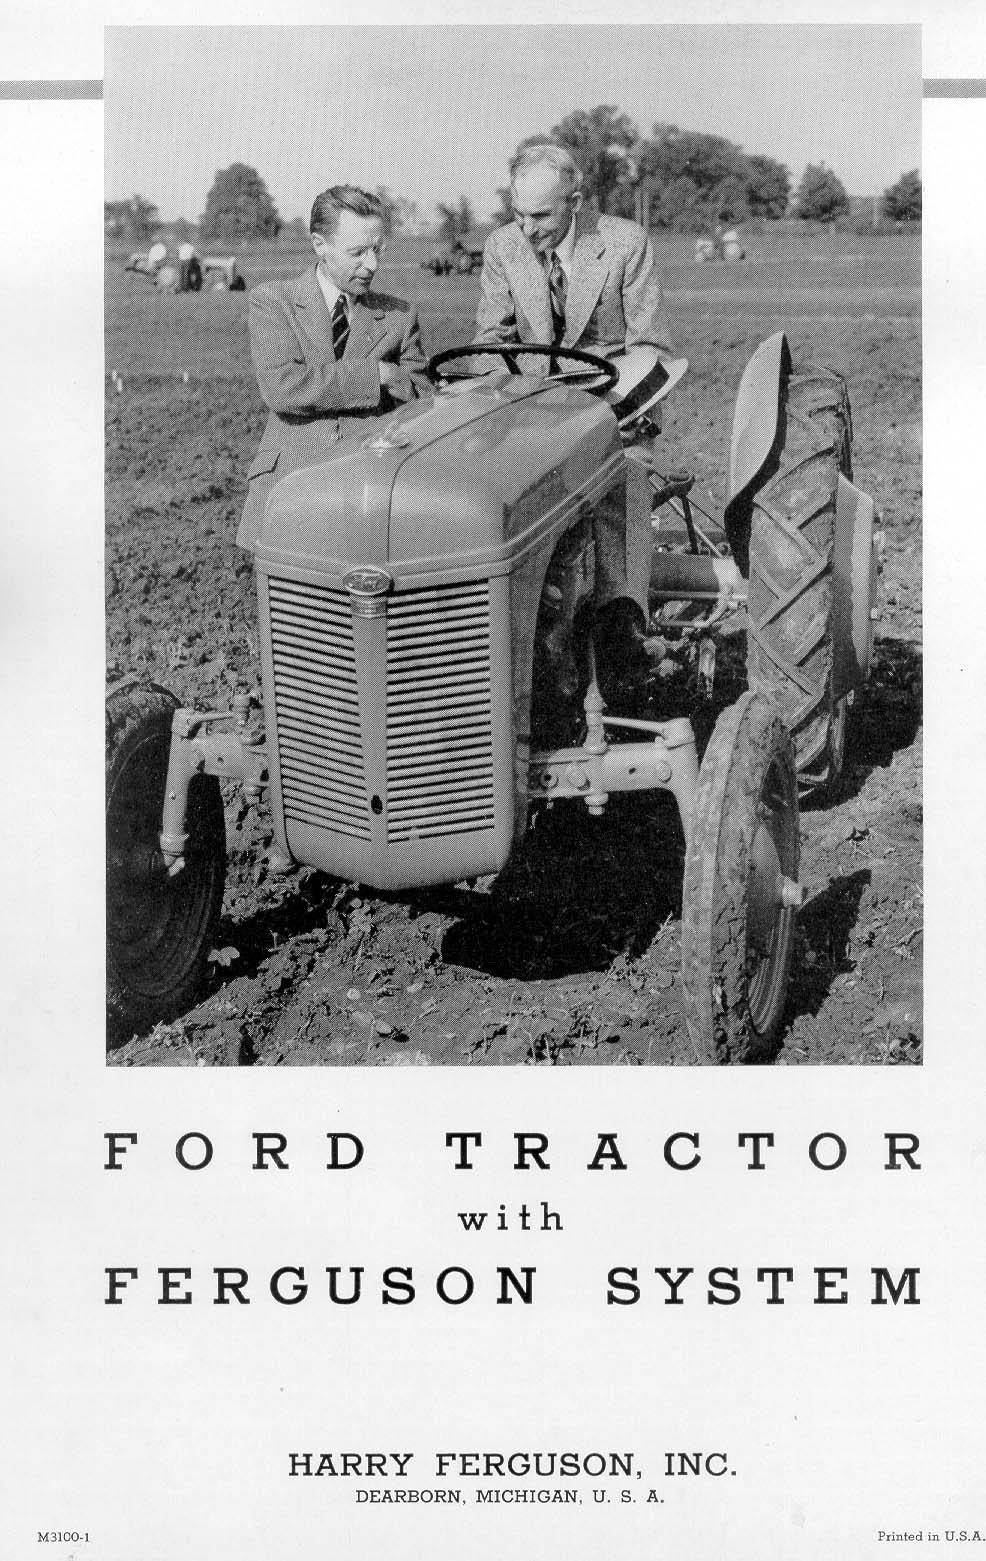 9n Ford Tractor >> Ford Tractor with Ferguson System - ad brochure